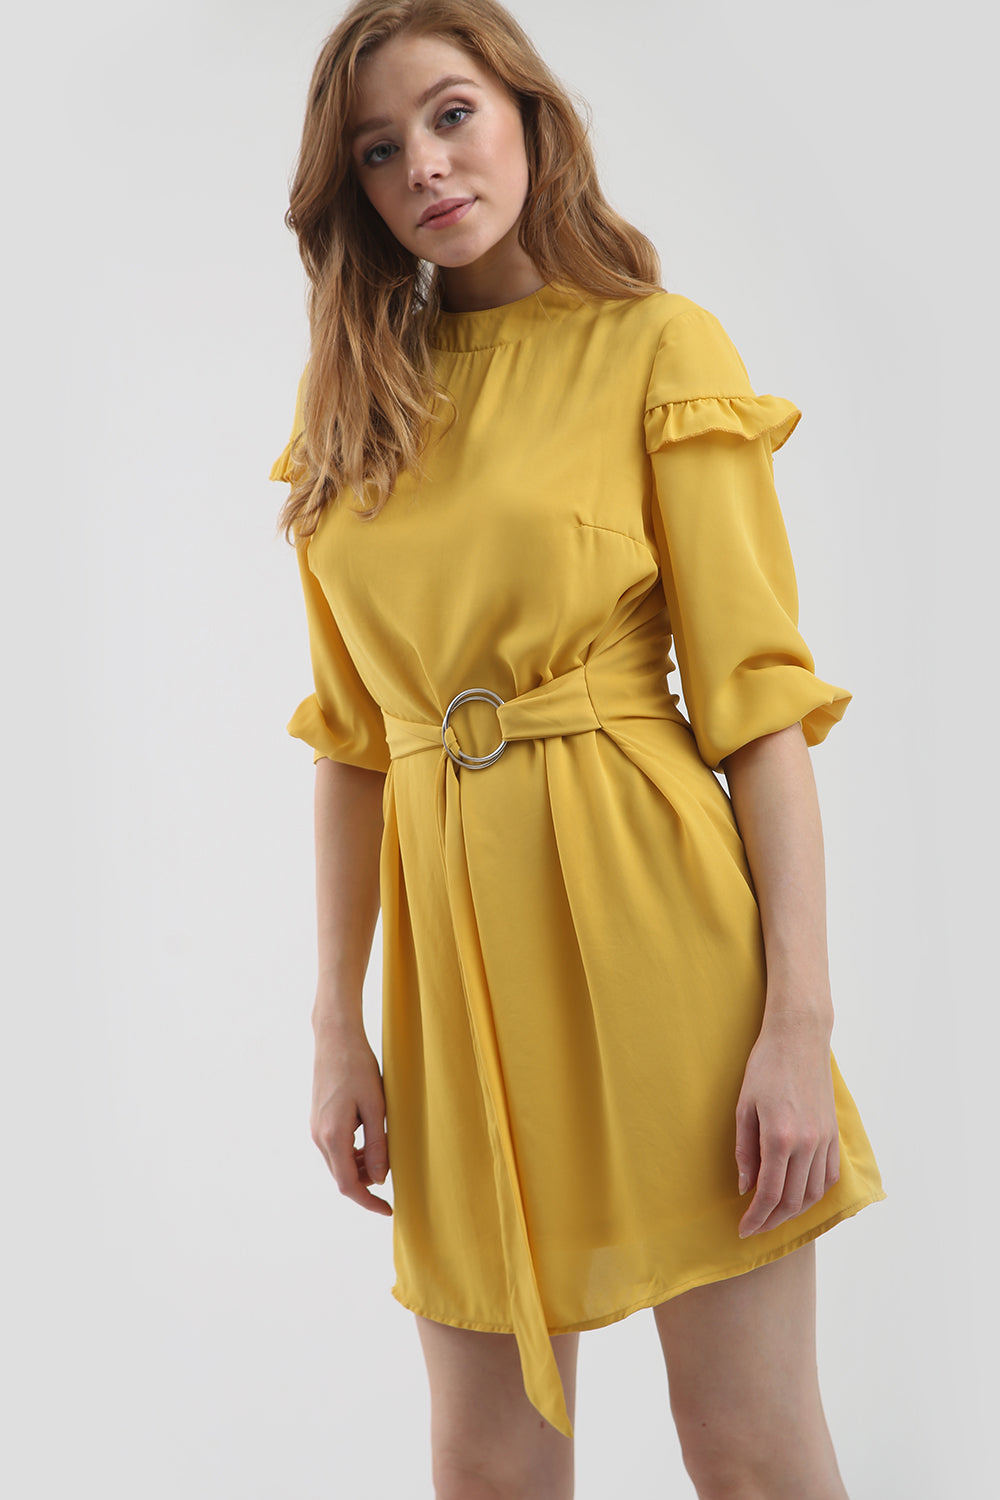 D Ring Belted Frilly Mini Shift Dress - bejealous-com